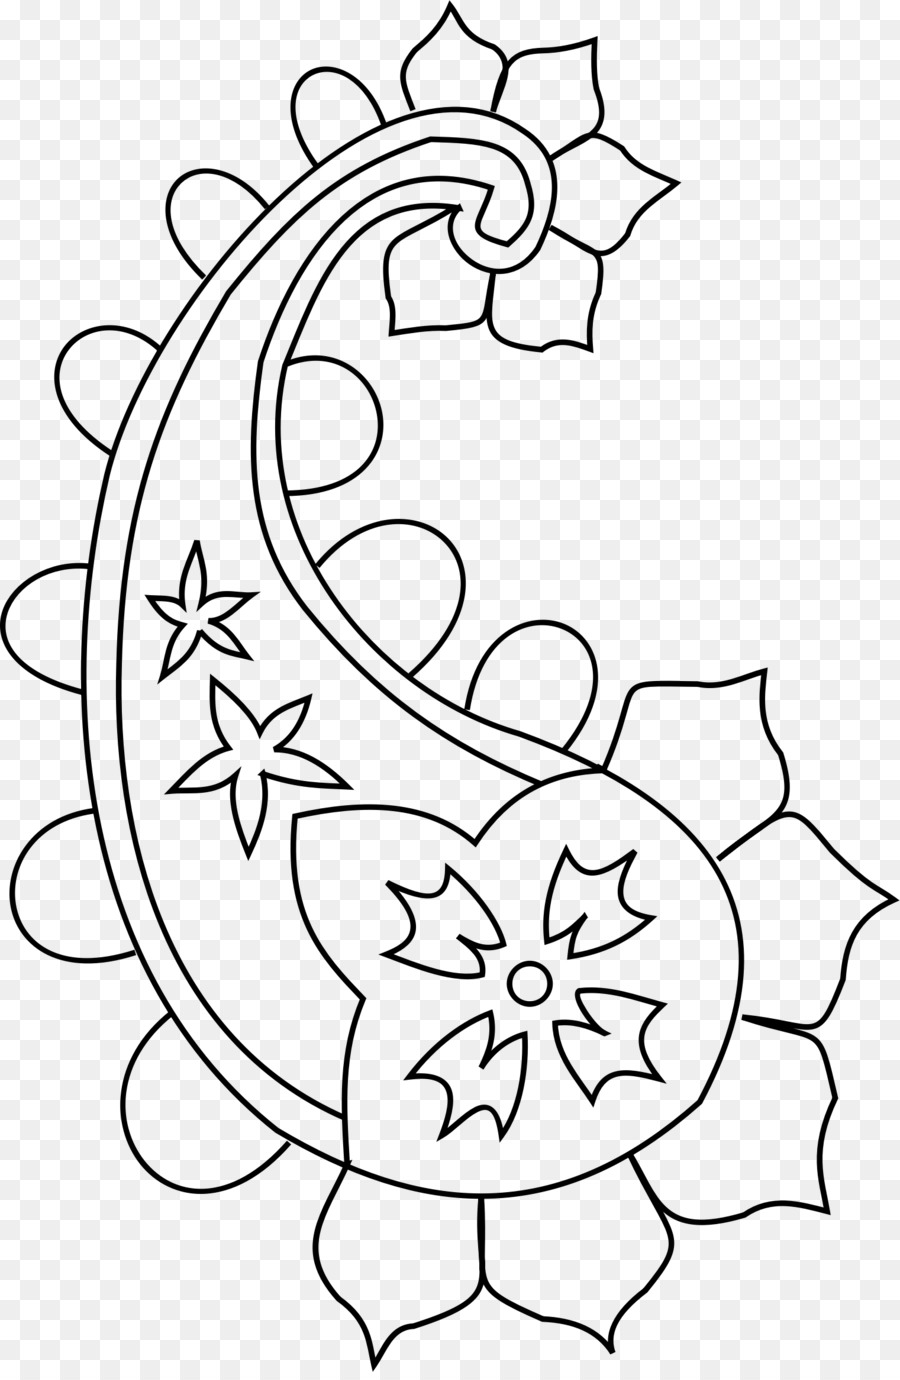 Paisley clipart black and white. Flower hand transparent